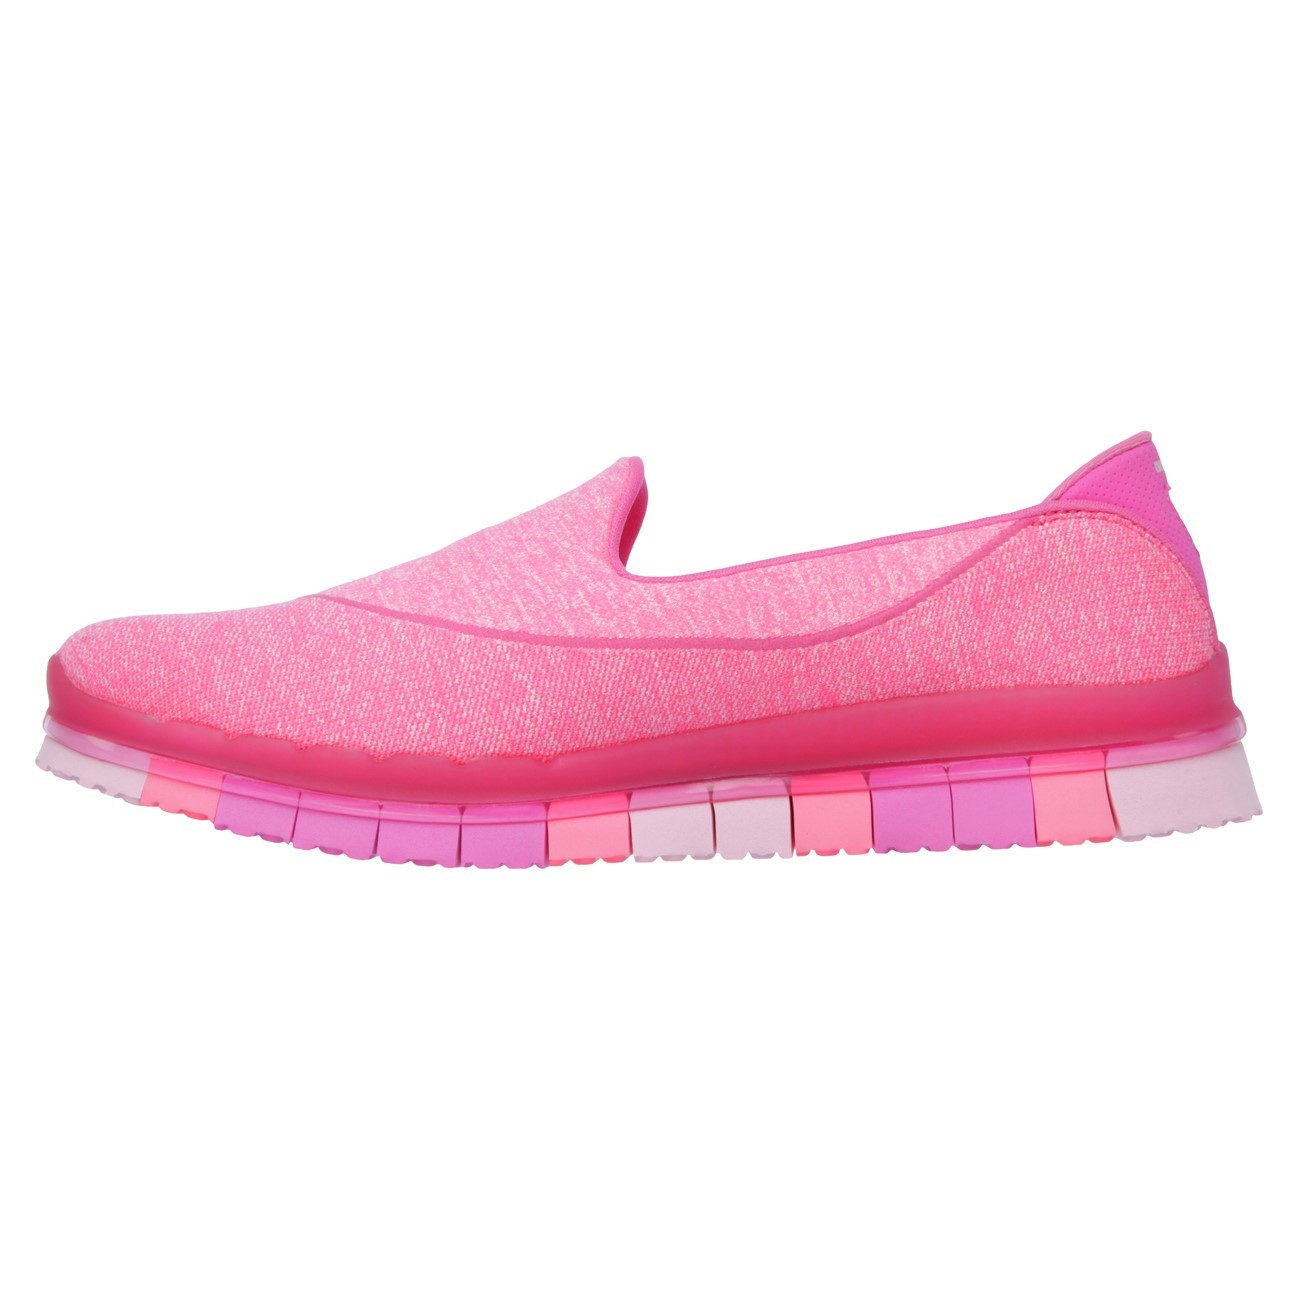 skechers go flex walk womens walking shoes hot pink. Black Bedroom Furniture Sets. Home Design Ideas